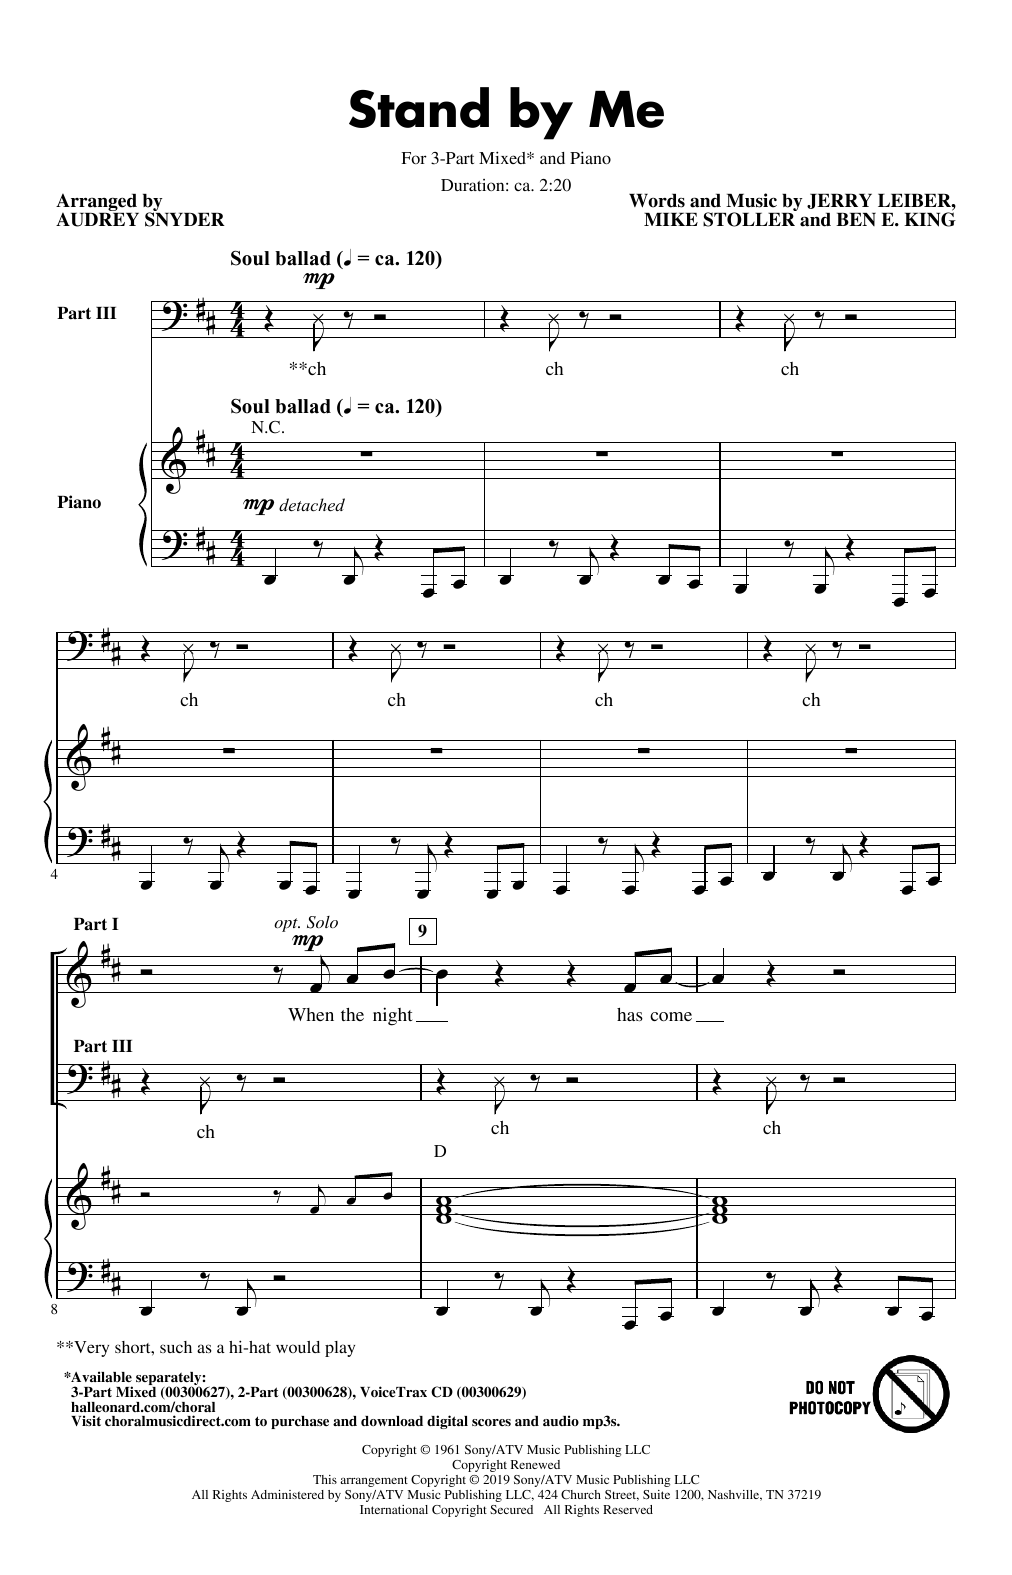 Stand By Me (arr. Audrey Snyder) Sheet Music